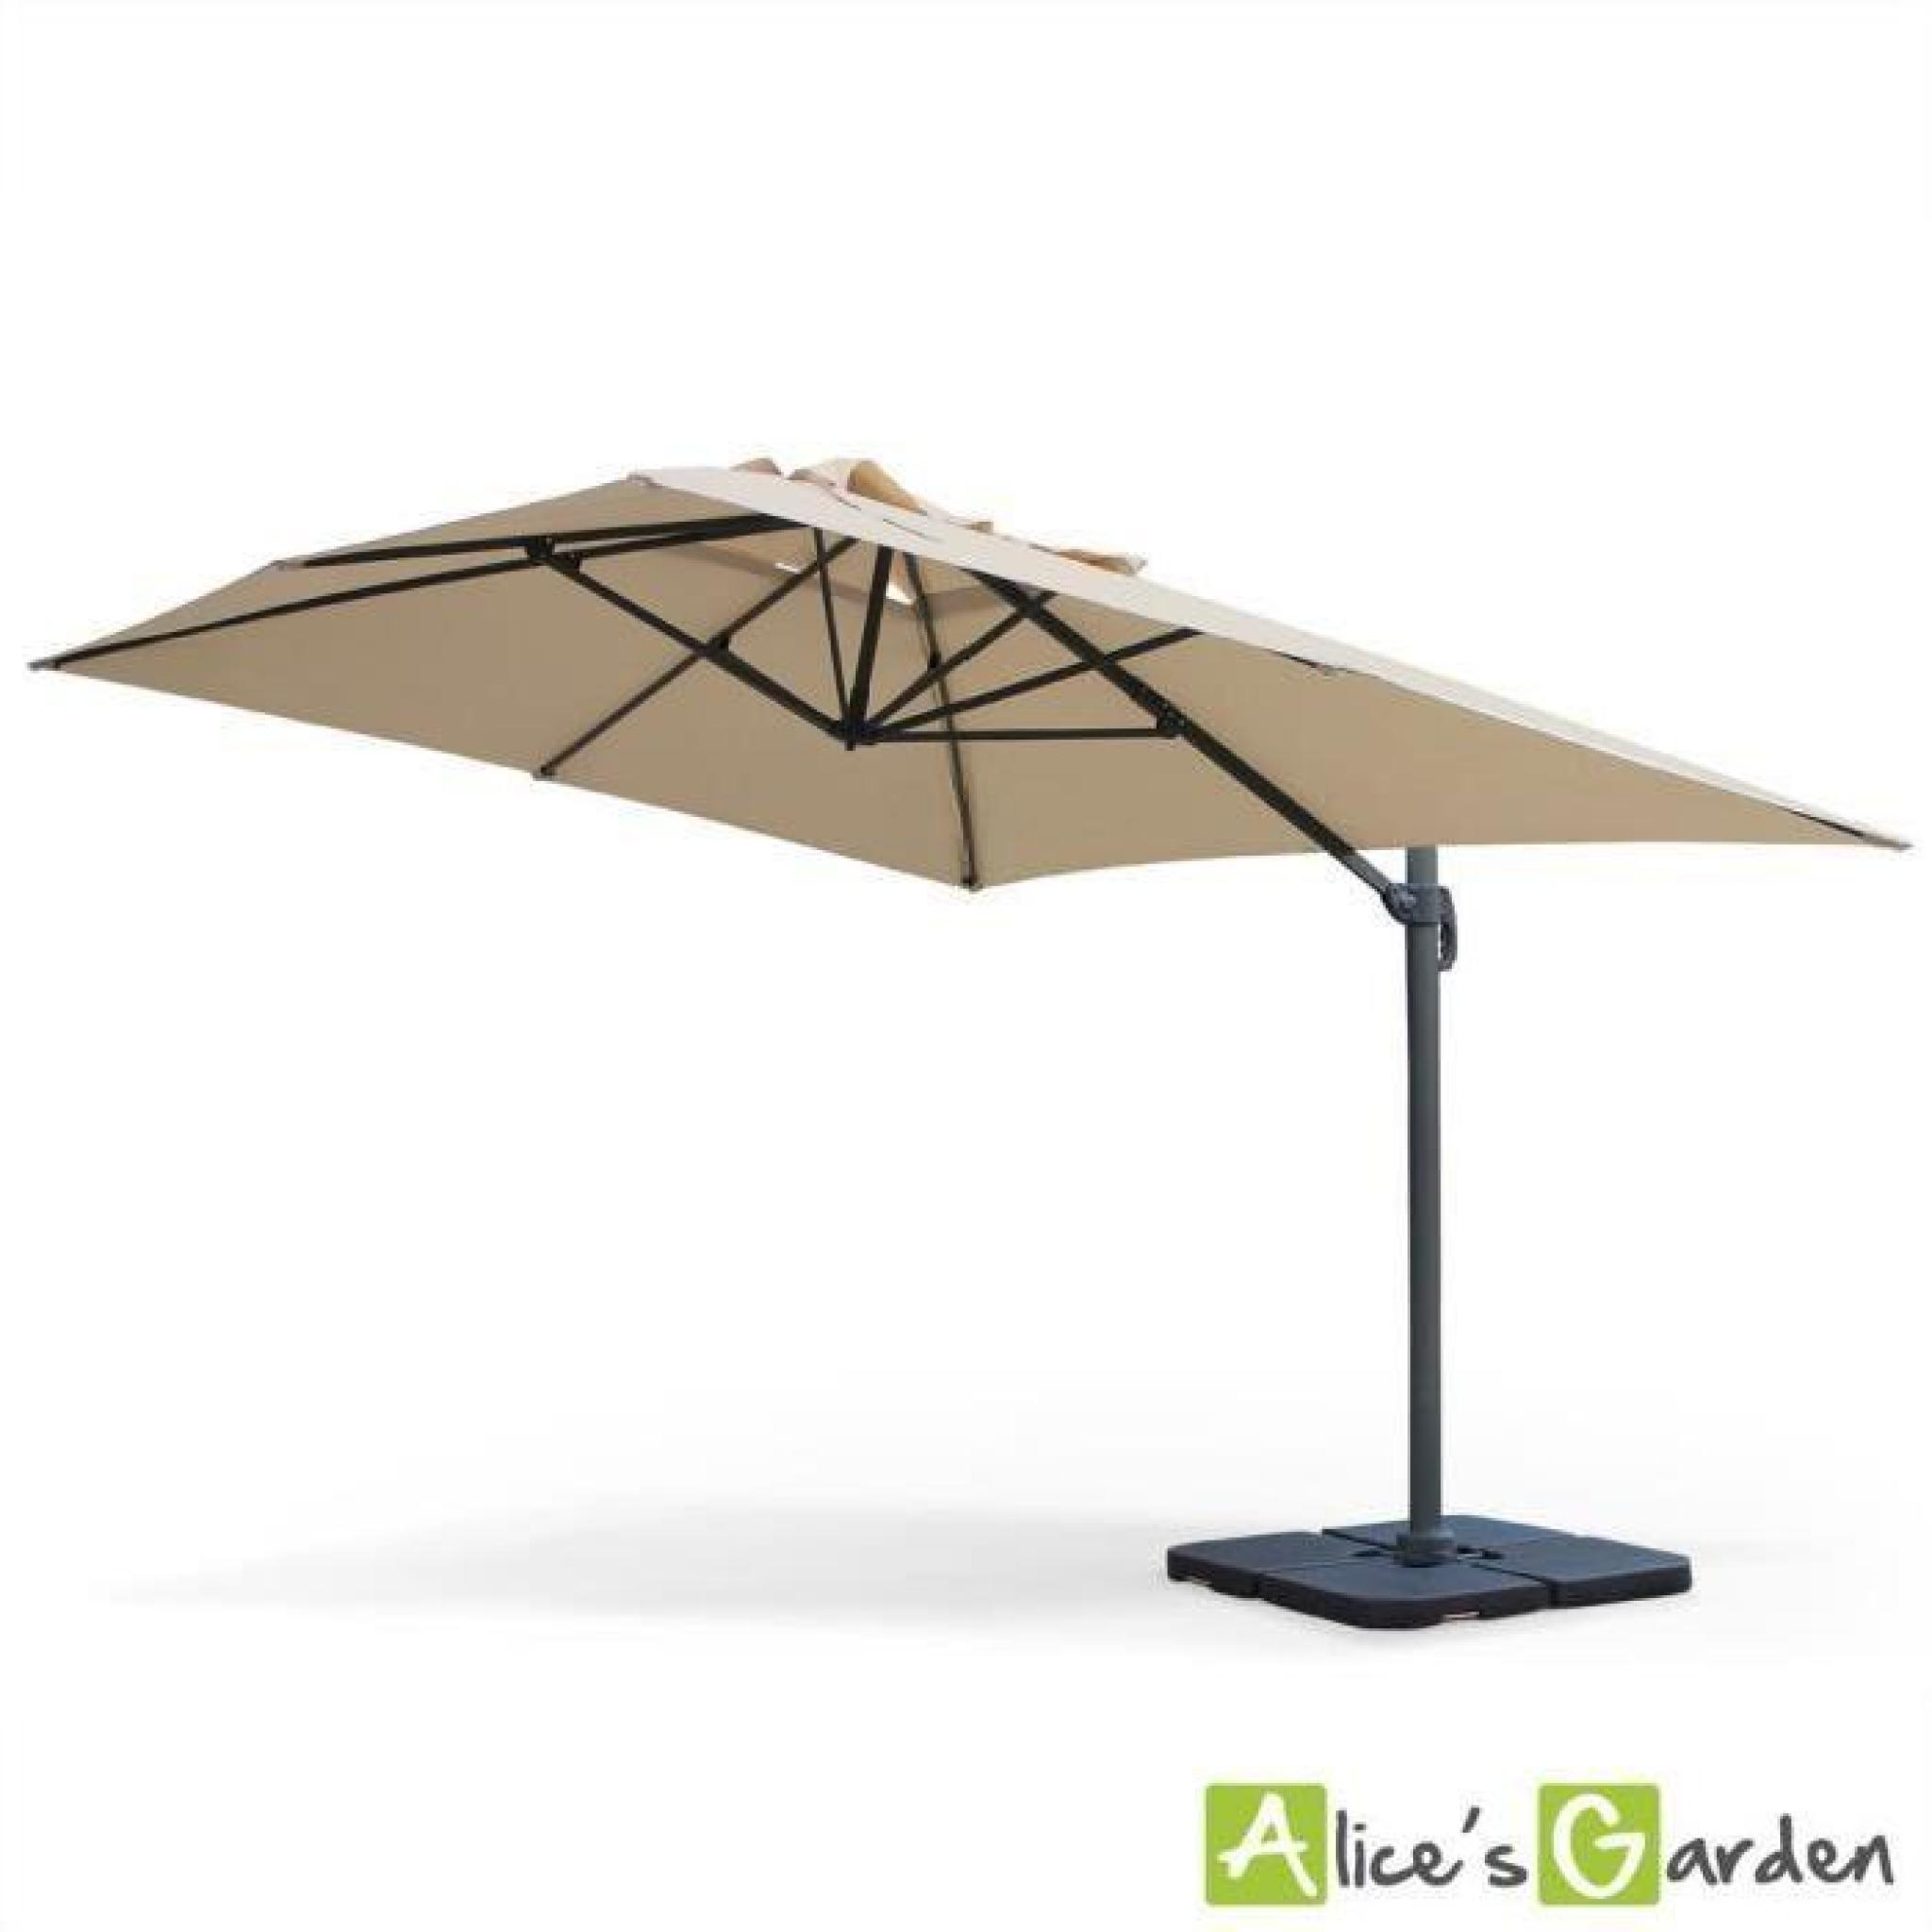 parasol d port rectangulaire st jean de luz 3x4m haut de gamme beige excentr inclinable. Black Bedroom Furniture Sets. Home Design Ideas